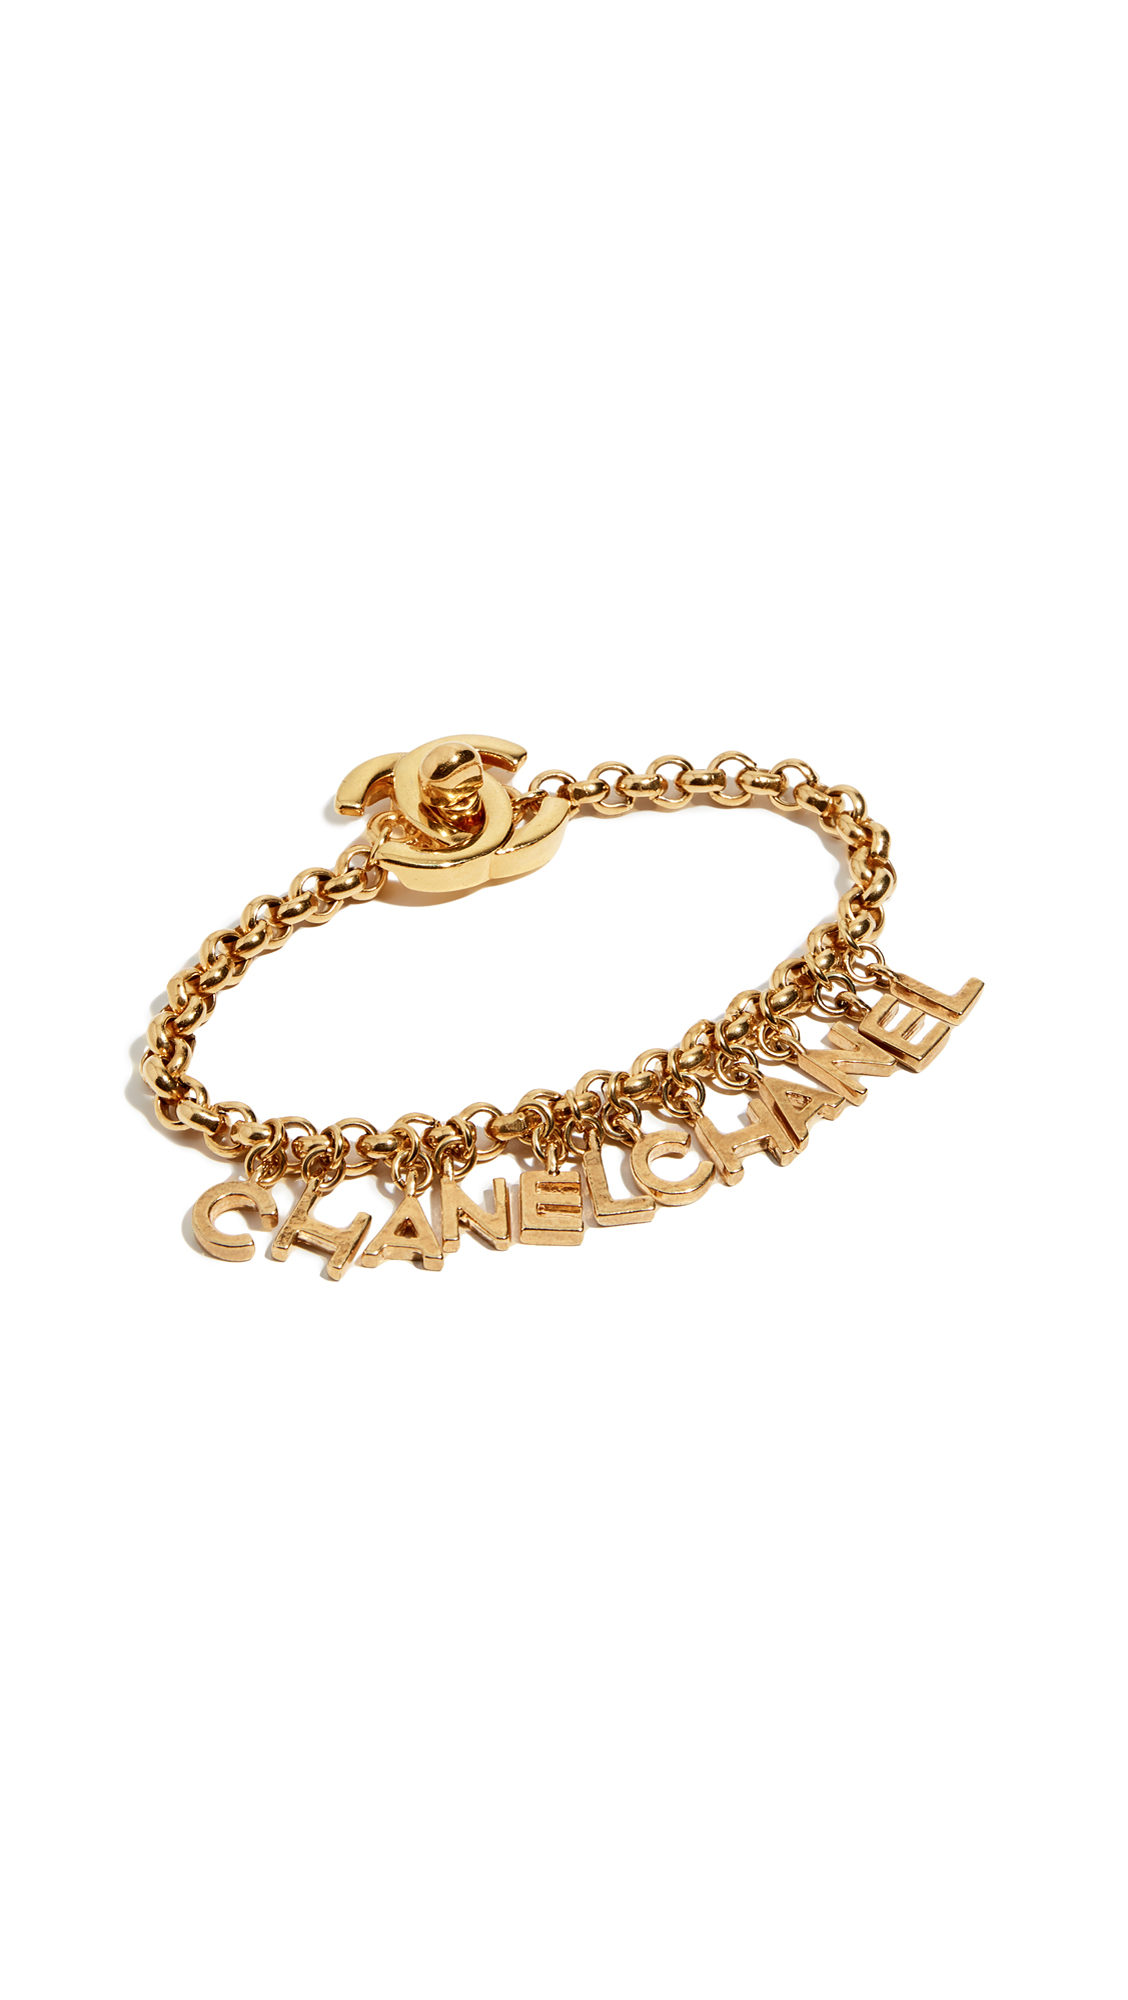 WHAT GOES AROUND COMES AROUND Chanel Letters Charm Bracelet in Gold